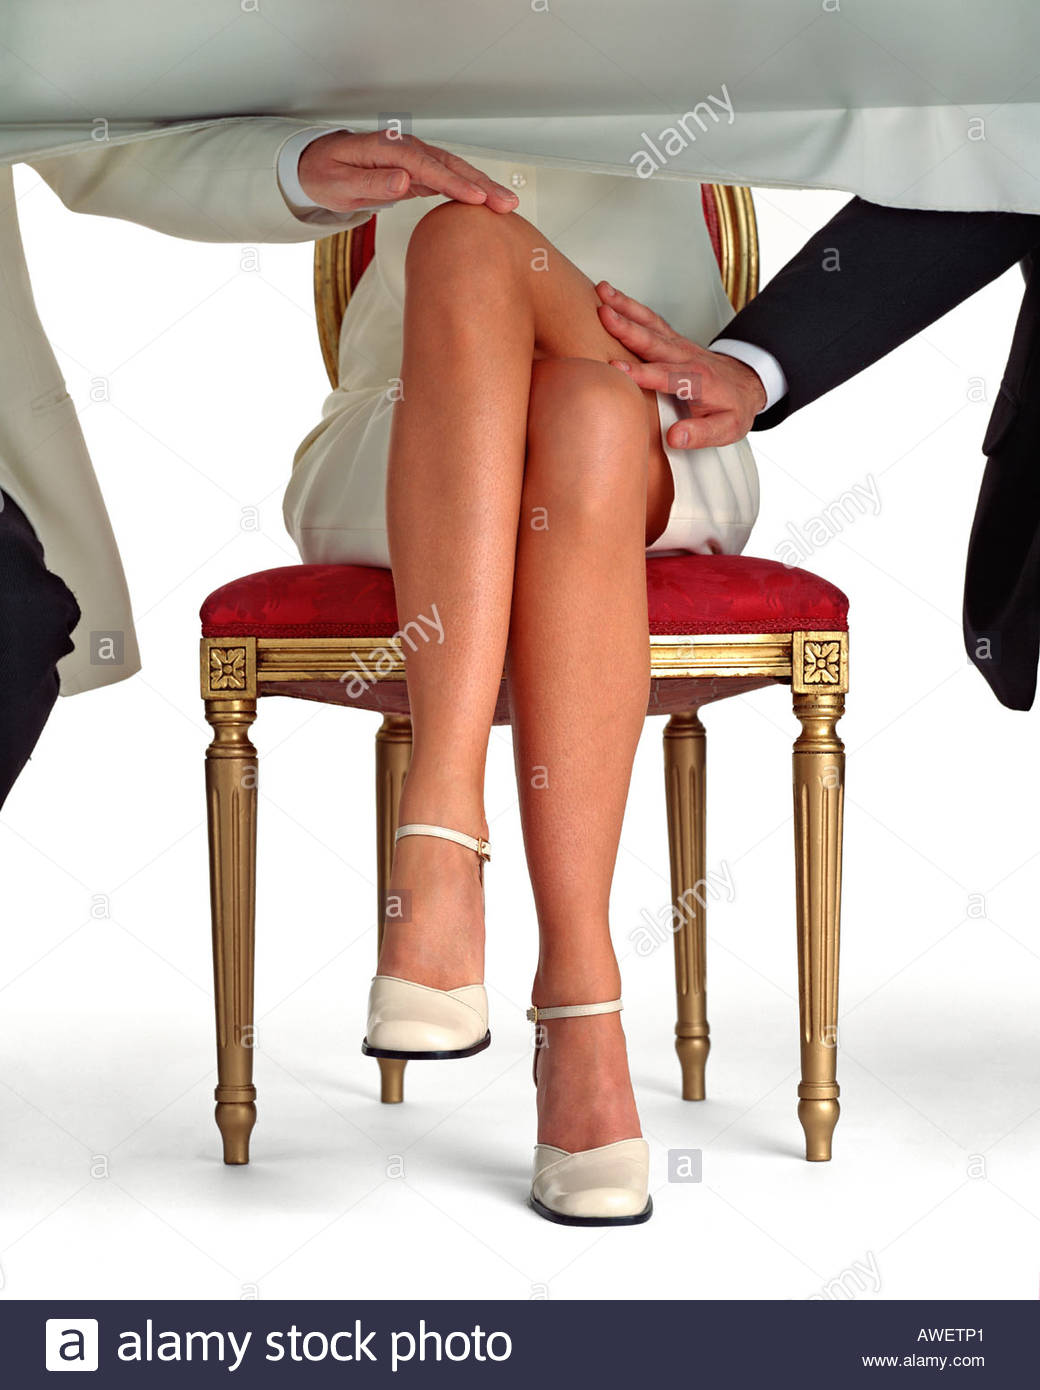 Women With Leg Under Table Free Photo 93